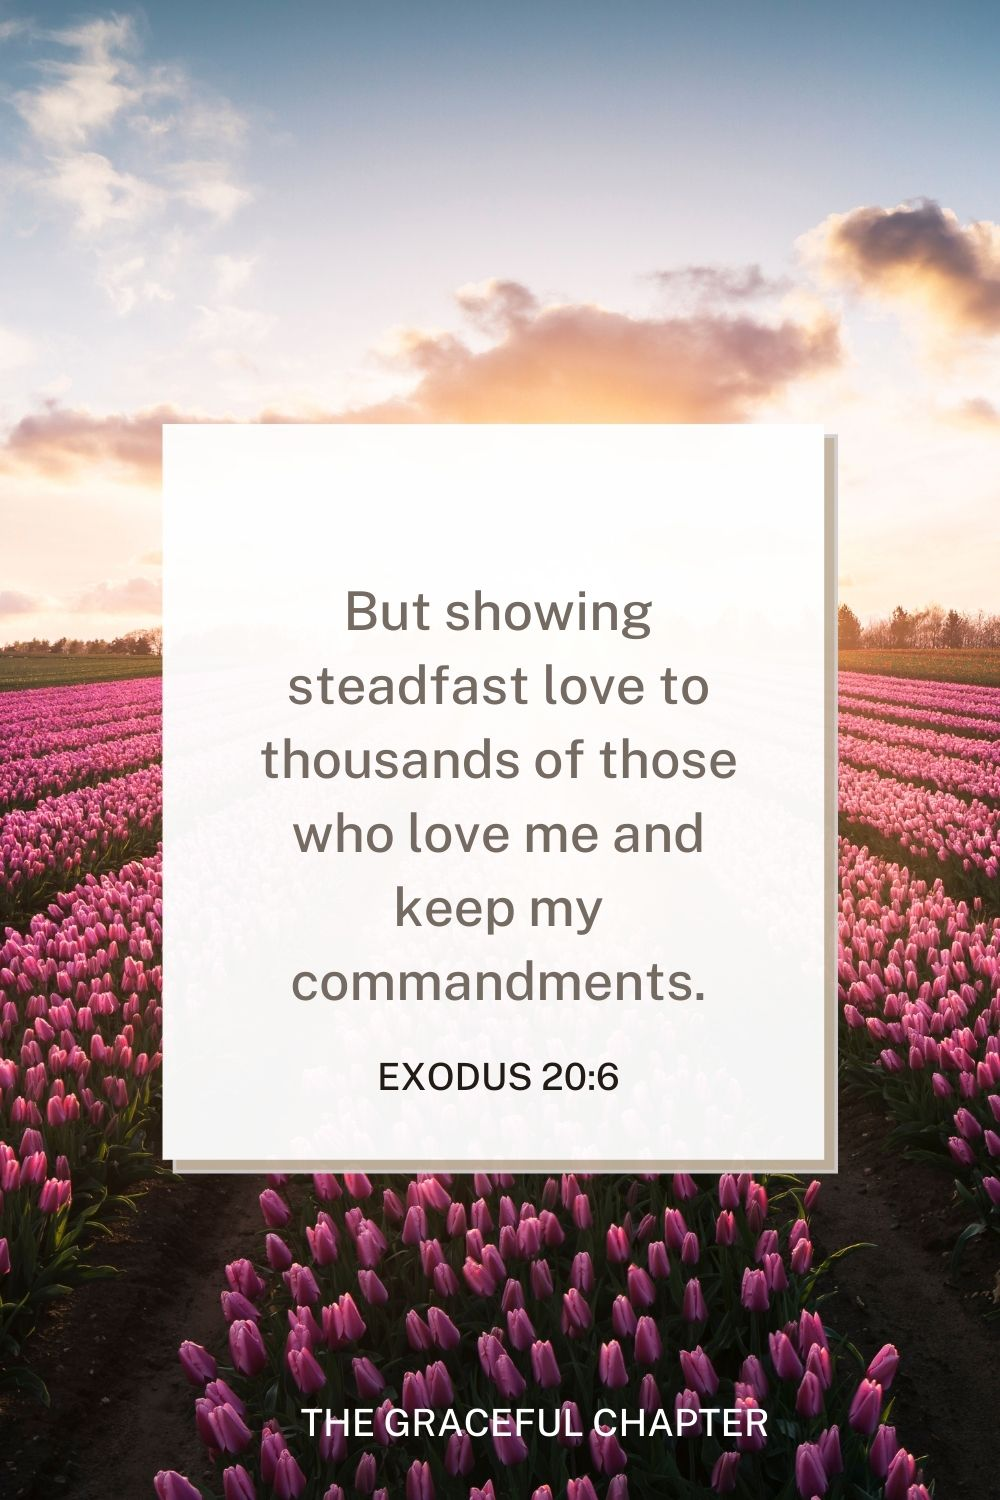 But showing steadfast love to thousands of those who love me and keep my commandments. Exodus 20:6